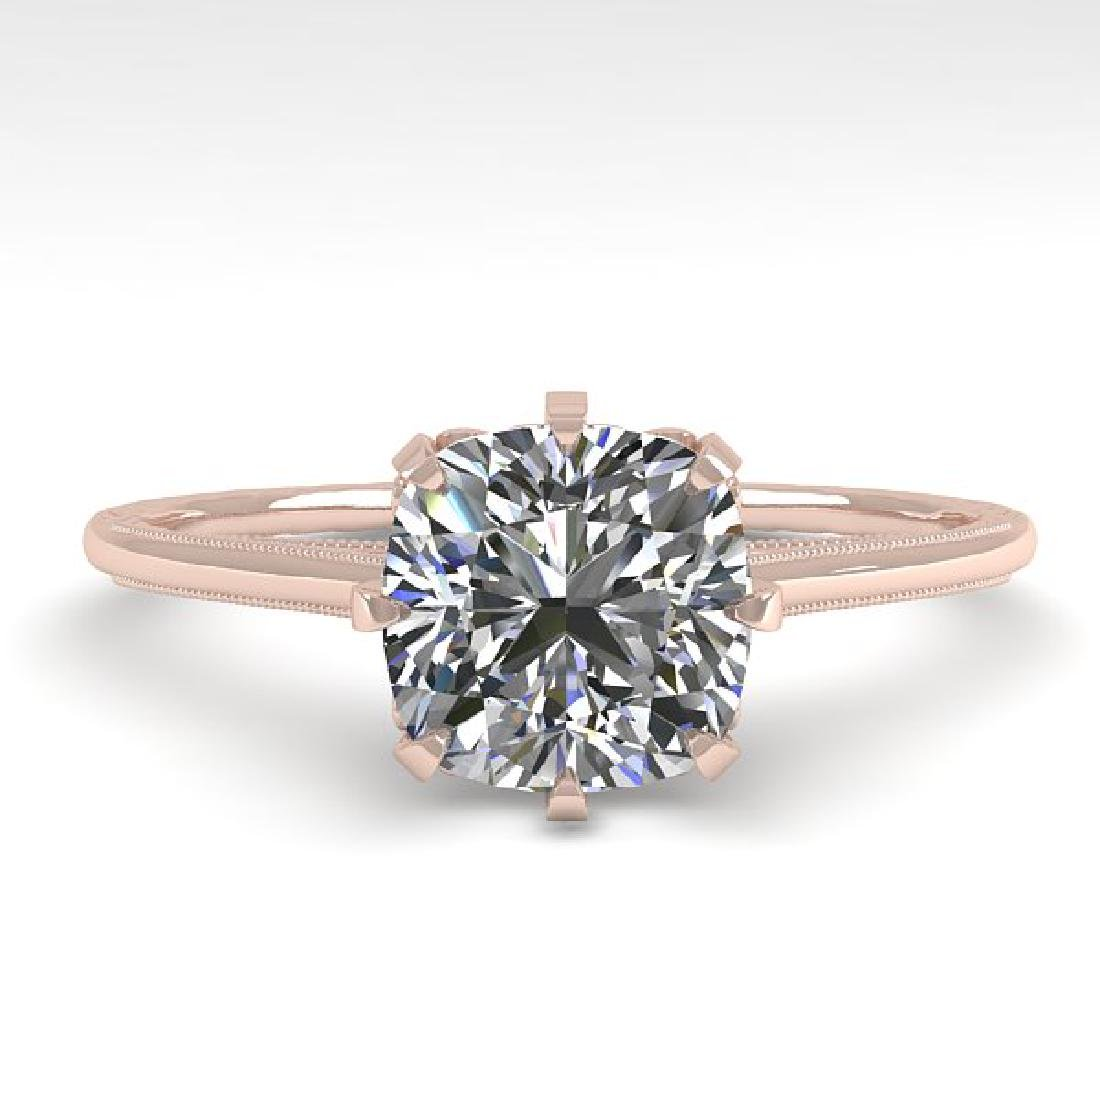 1.0 CTW Certified VS/SI Cushion Diamond Ring 14K Rose